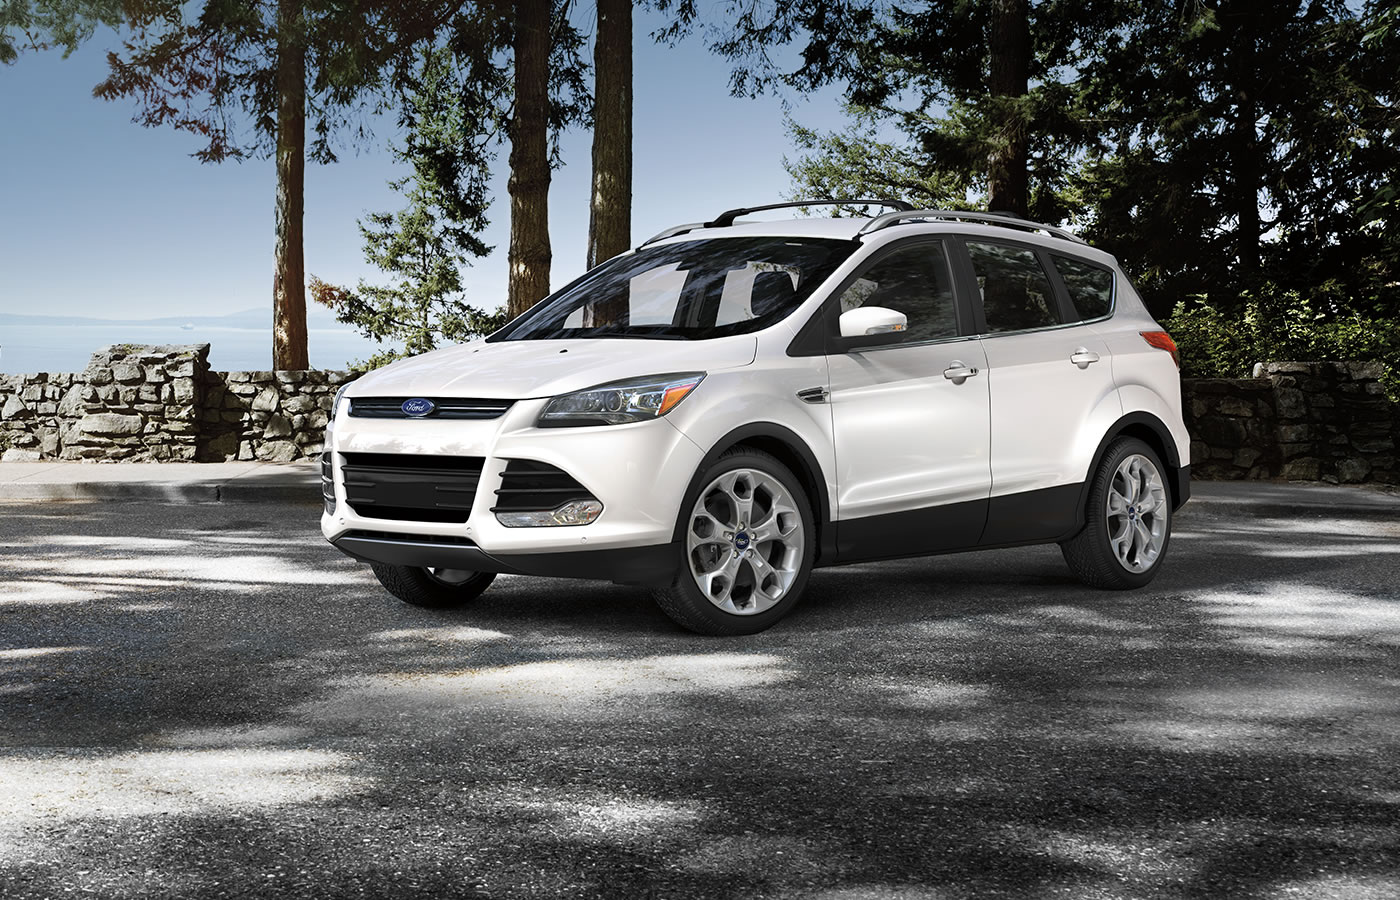 2016 Ford Escape Tested: Sync 3 (Mostly) Shines | Tom's Guide